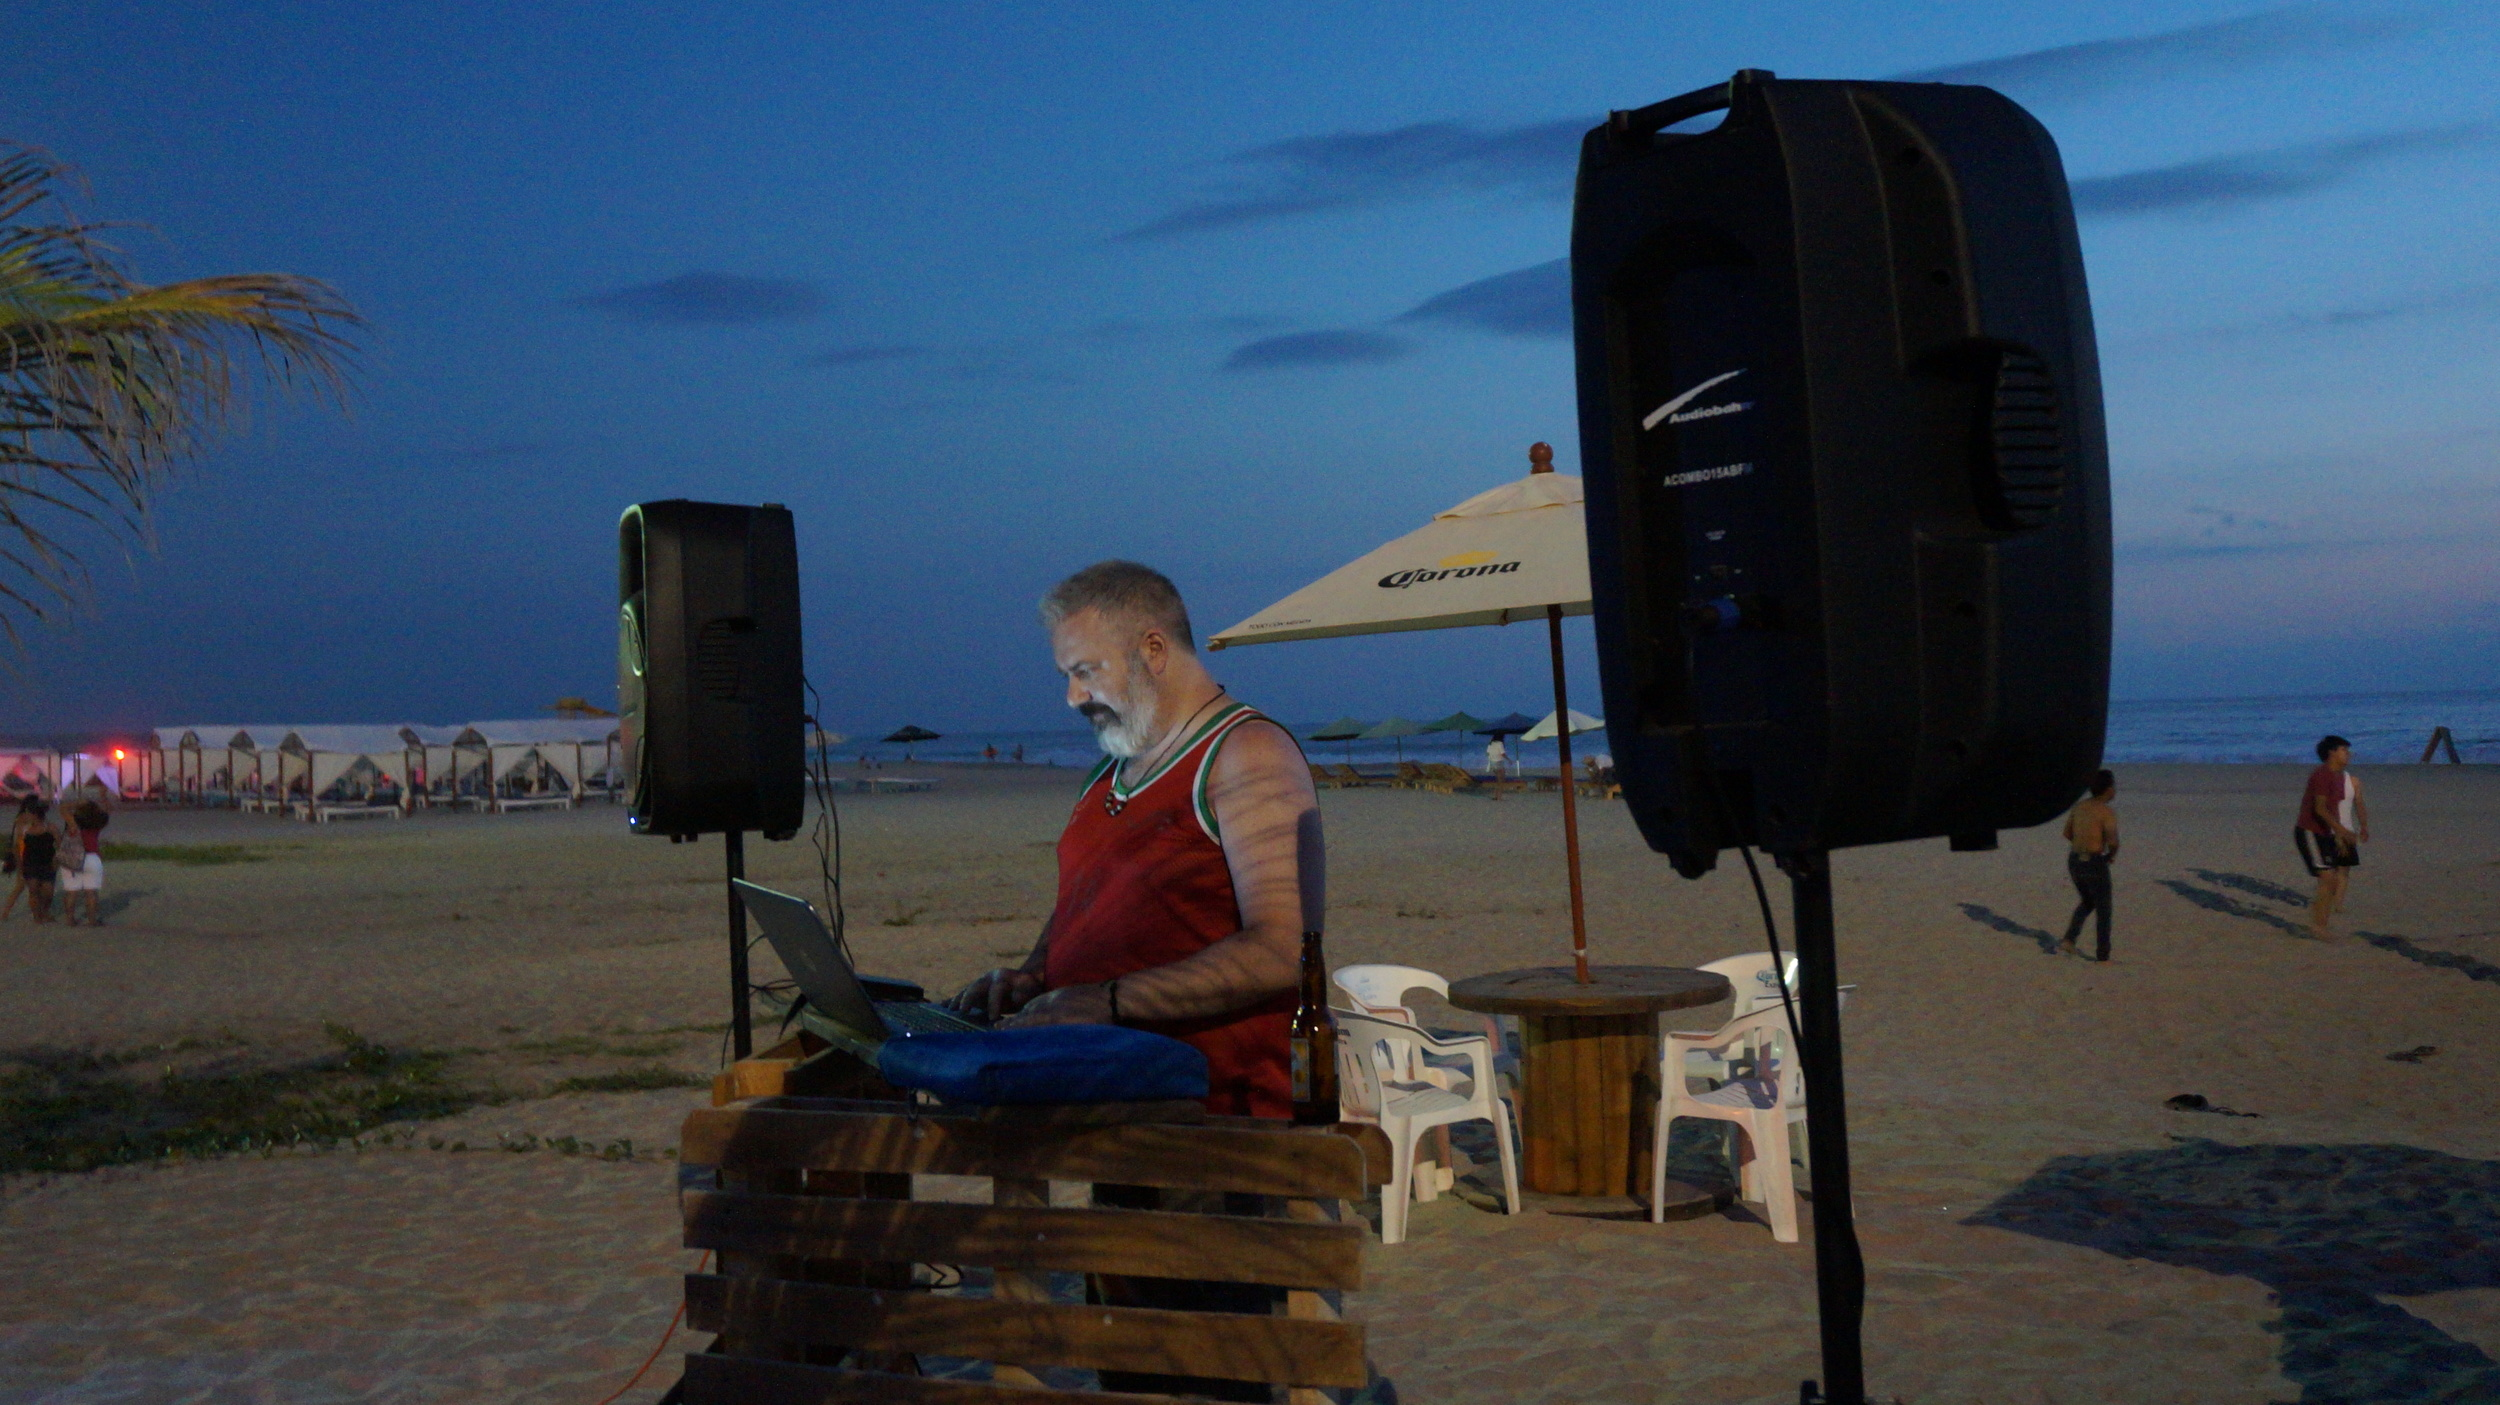 A fellow Canadian tourist managed to snag an early evening DJ gig at a beach bar. Later we went out for street tacos.